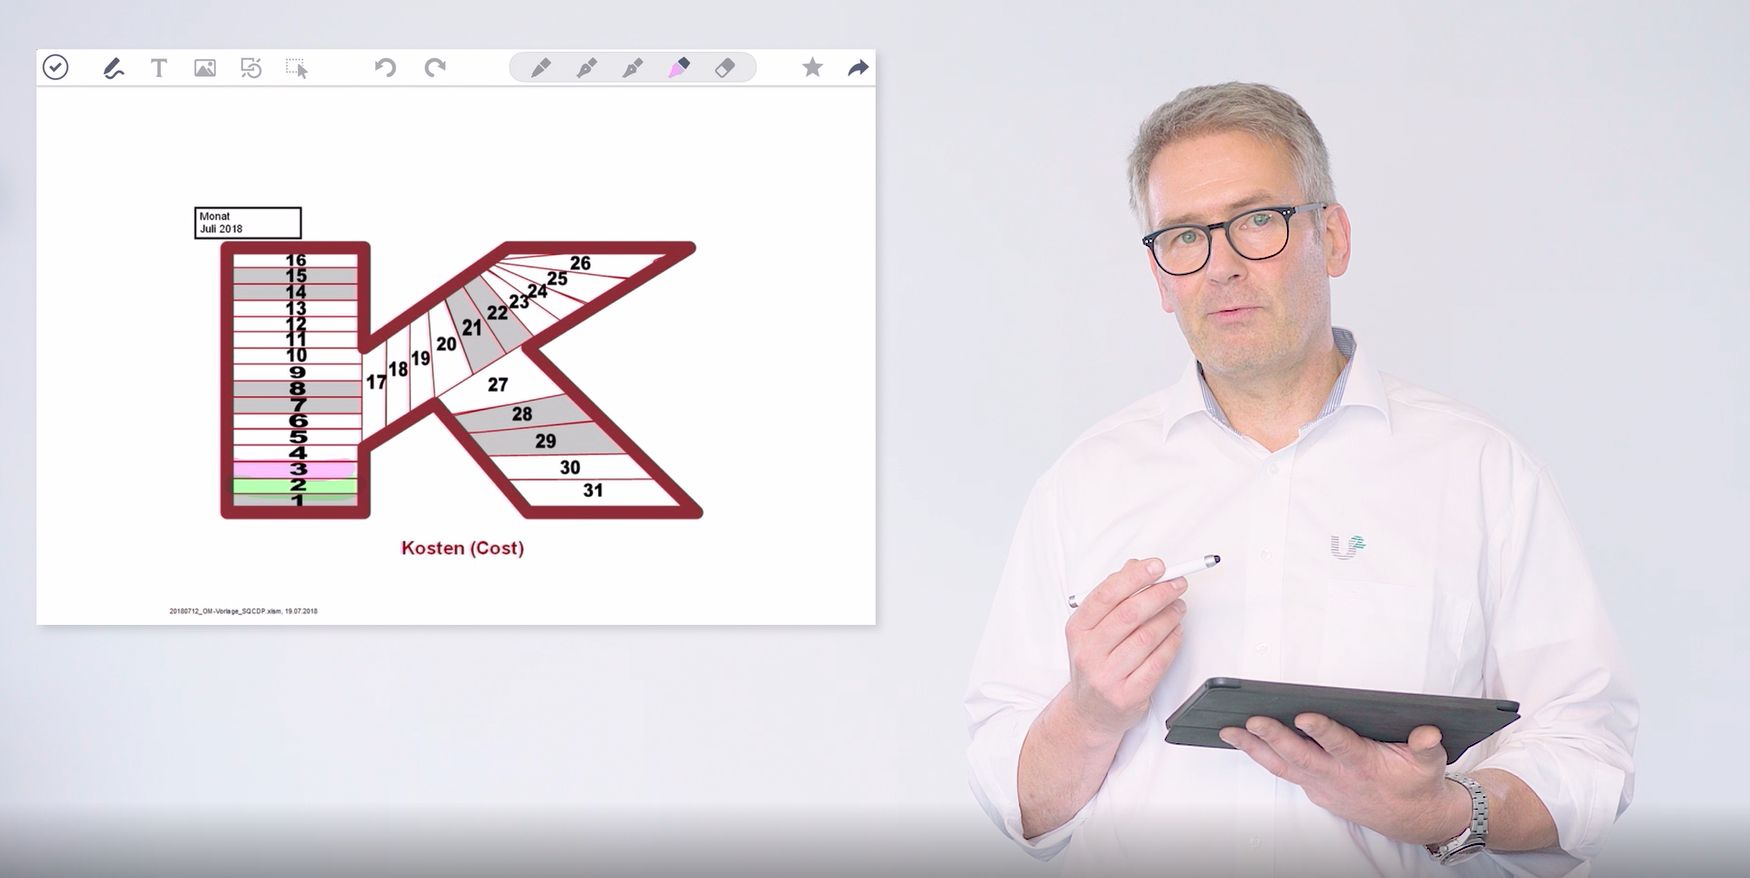 Modul 2: Shopfloor Management - Implementierung